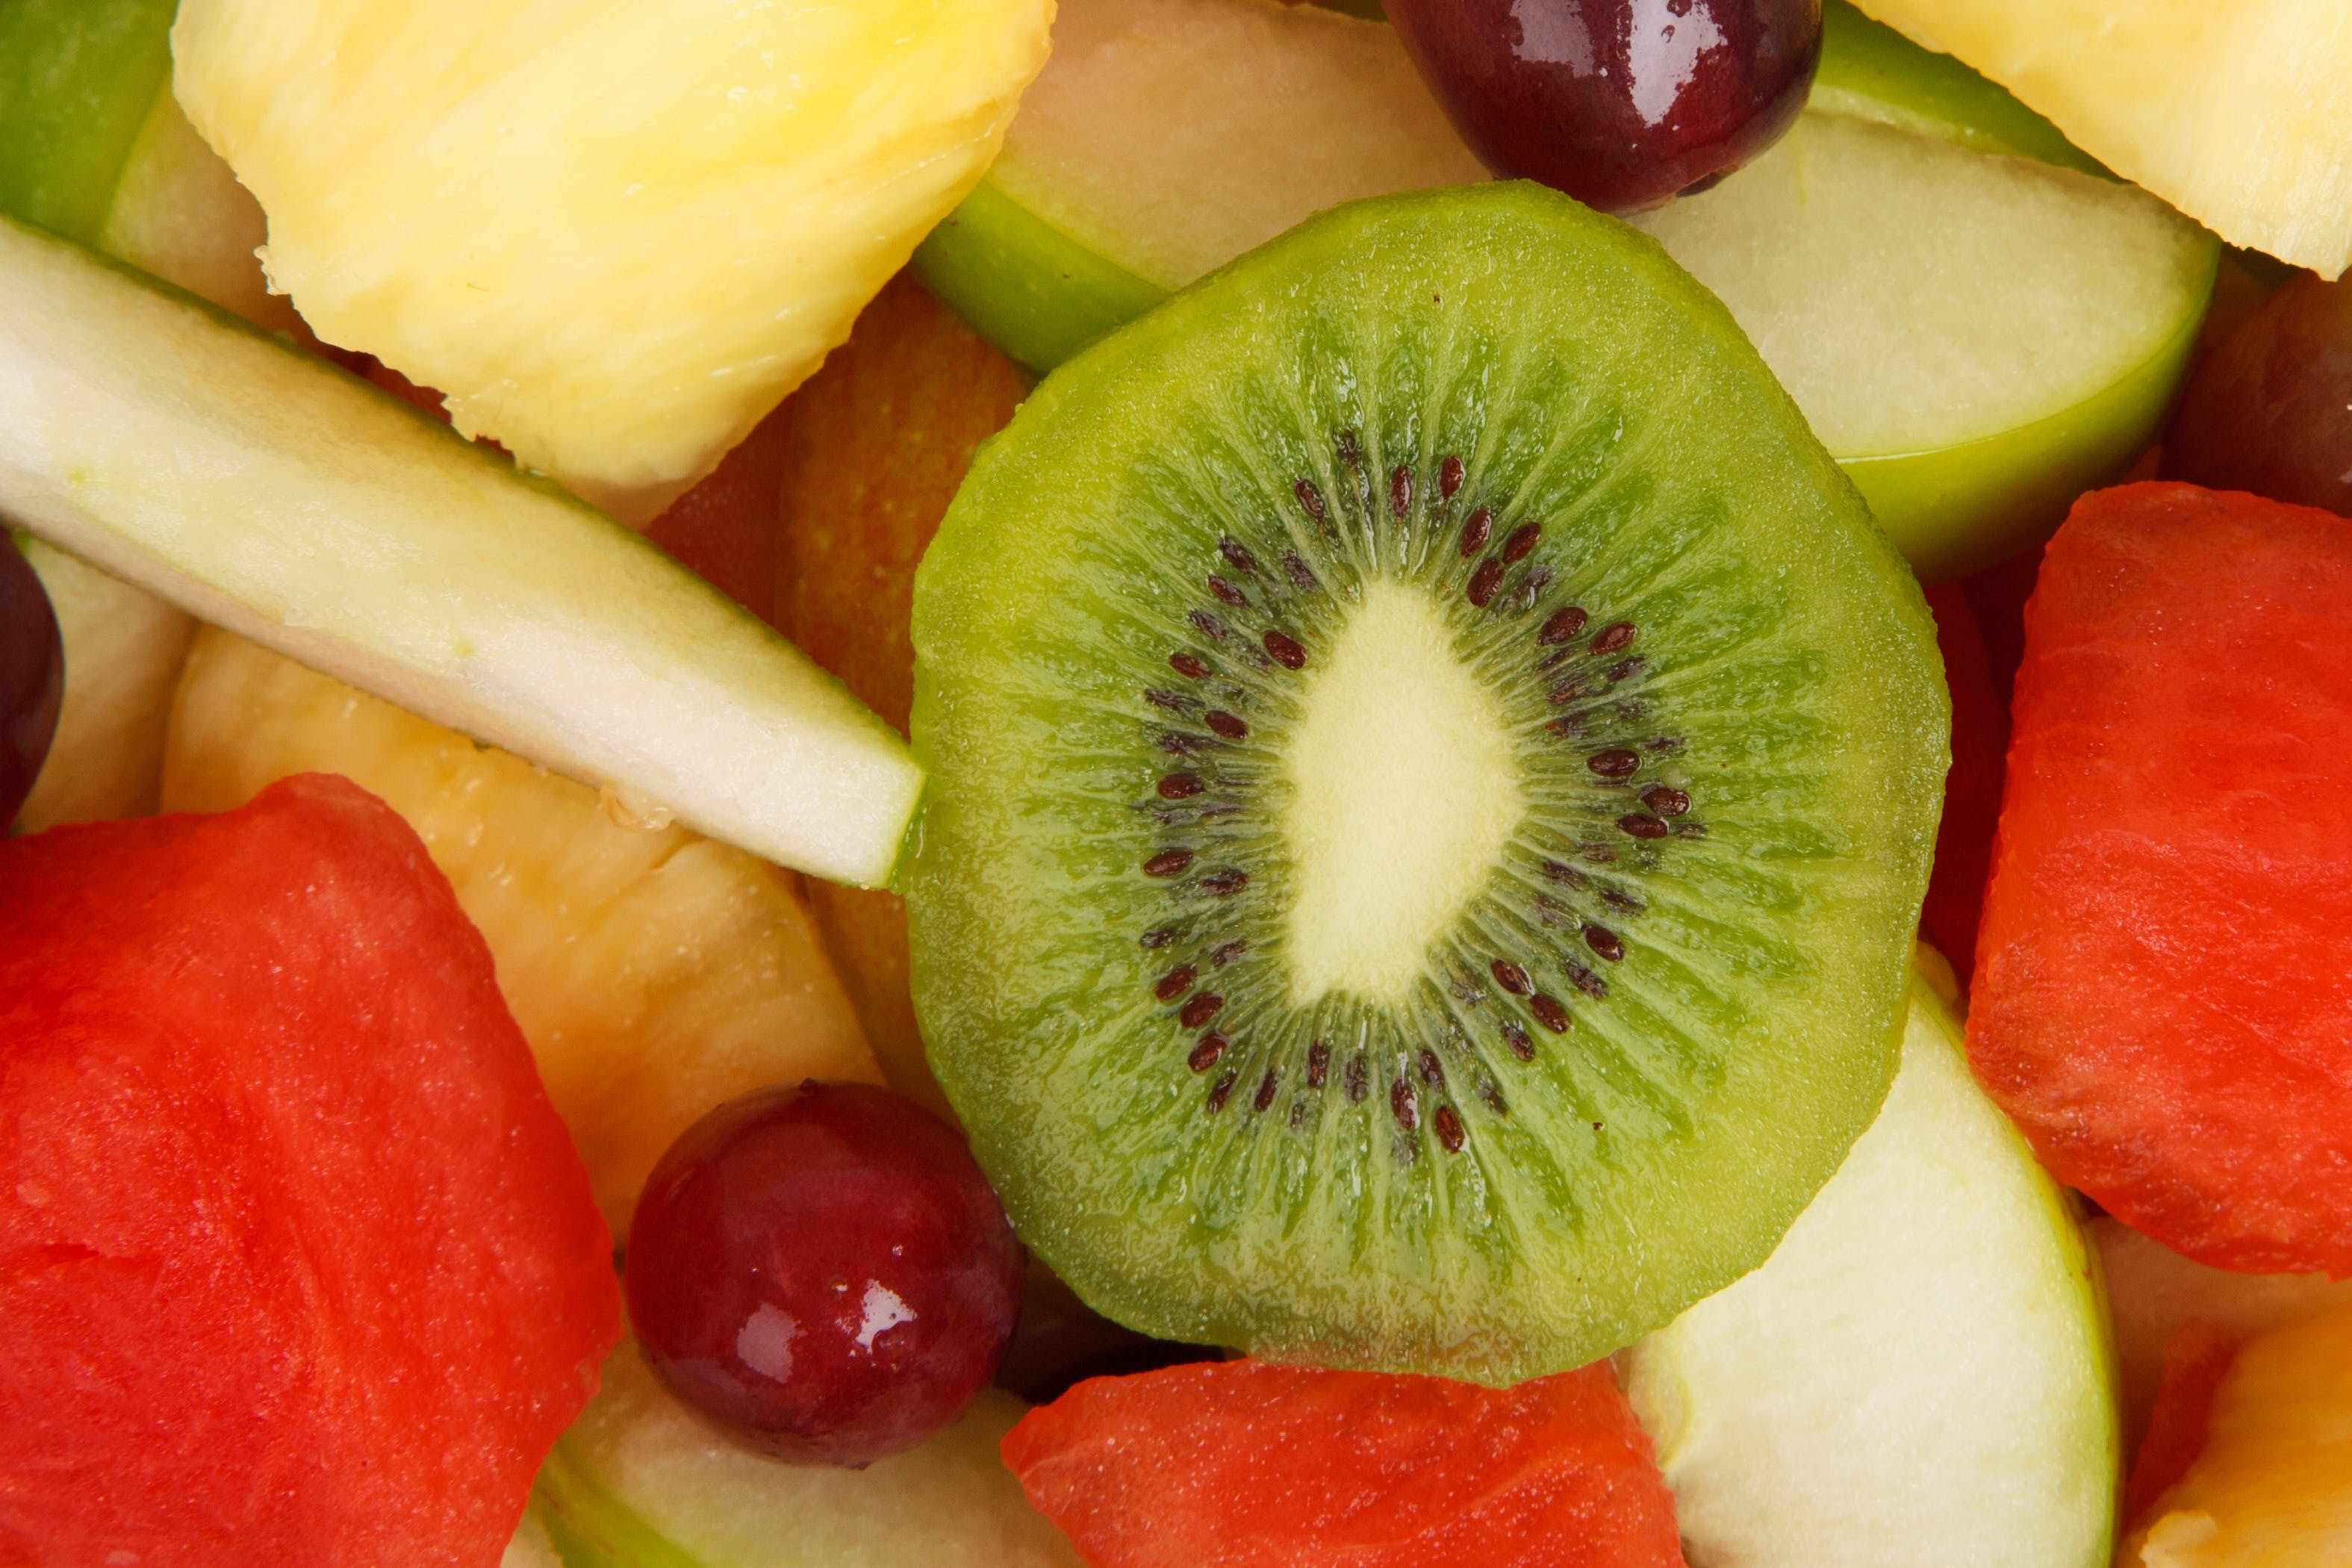 Free stock photo of food, apple, fruits, grapes